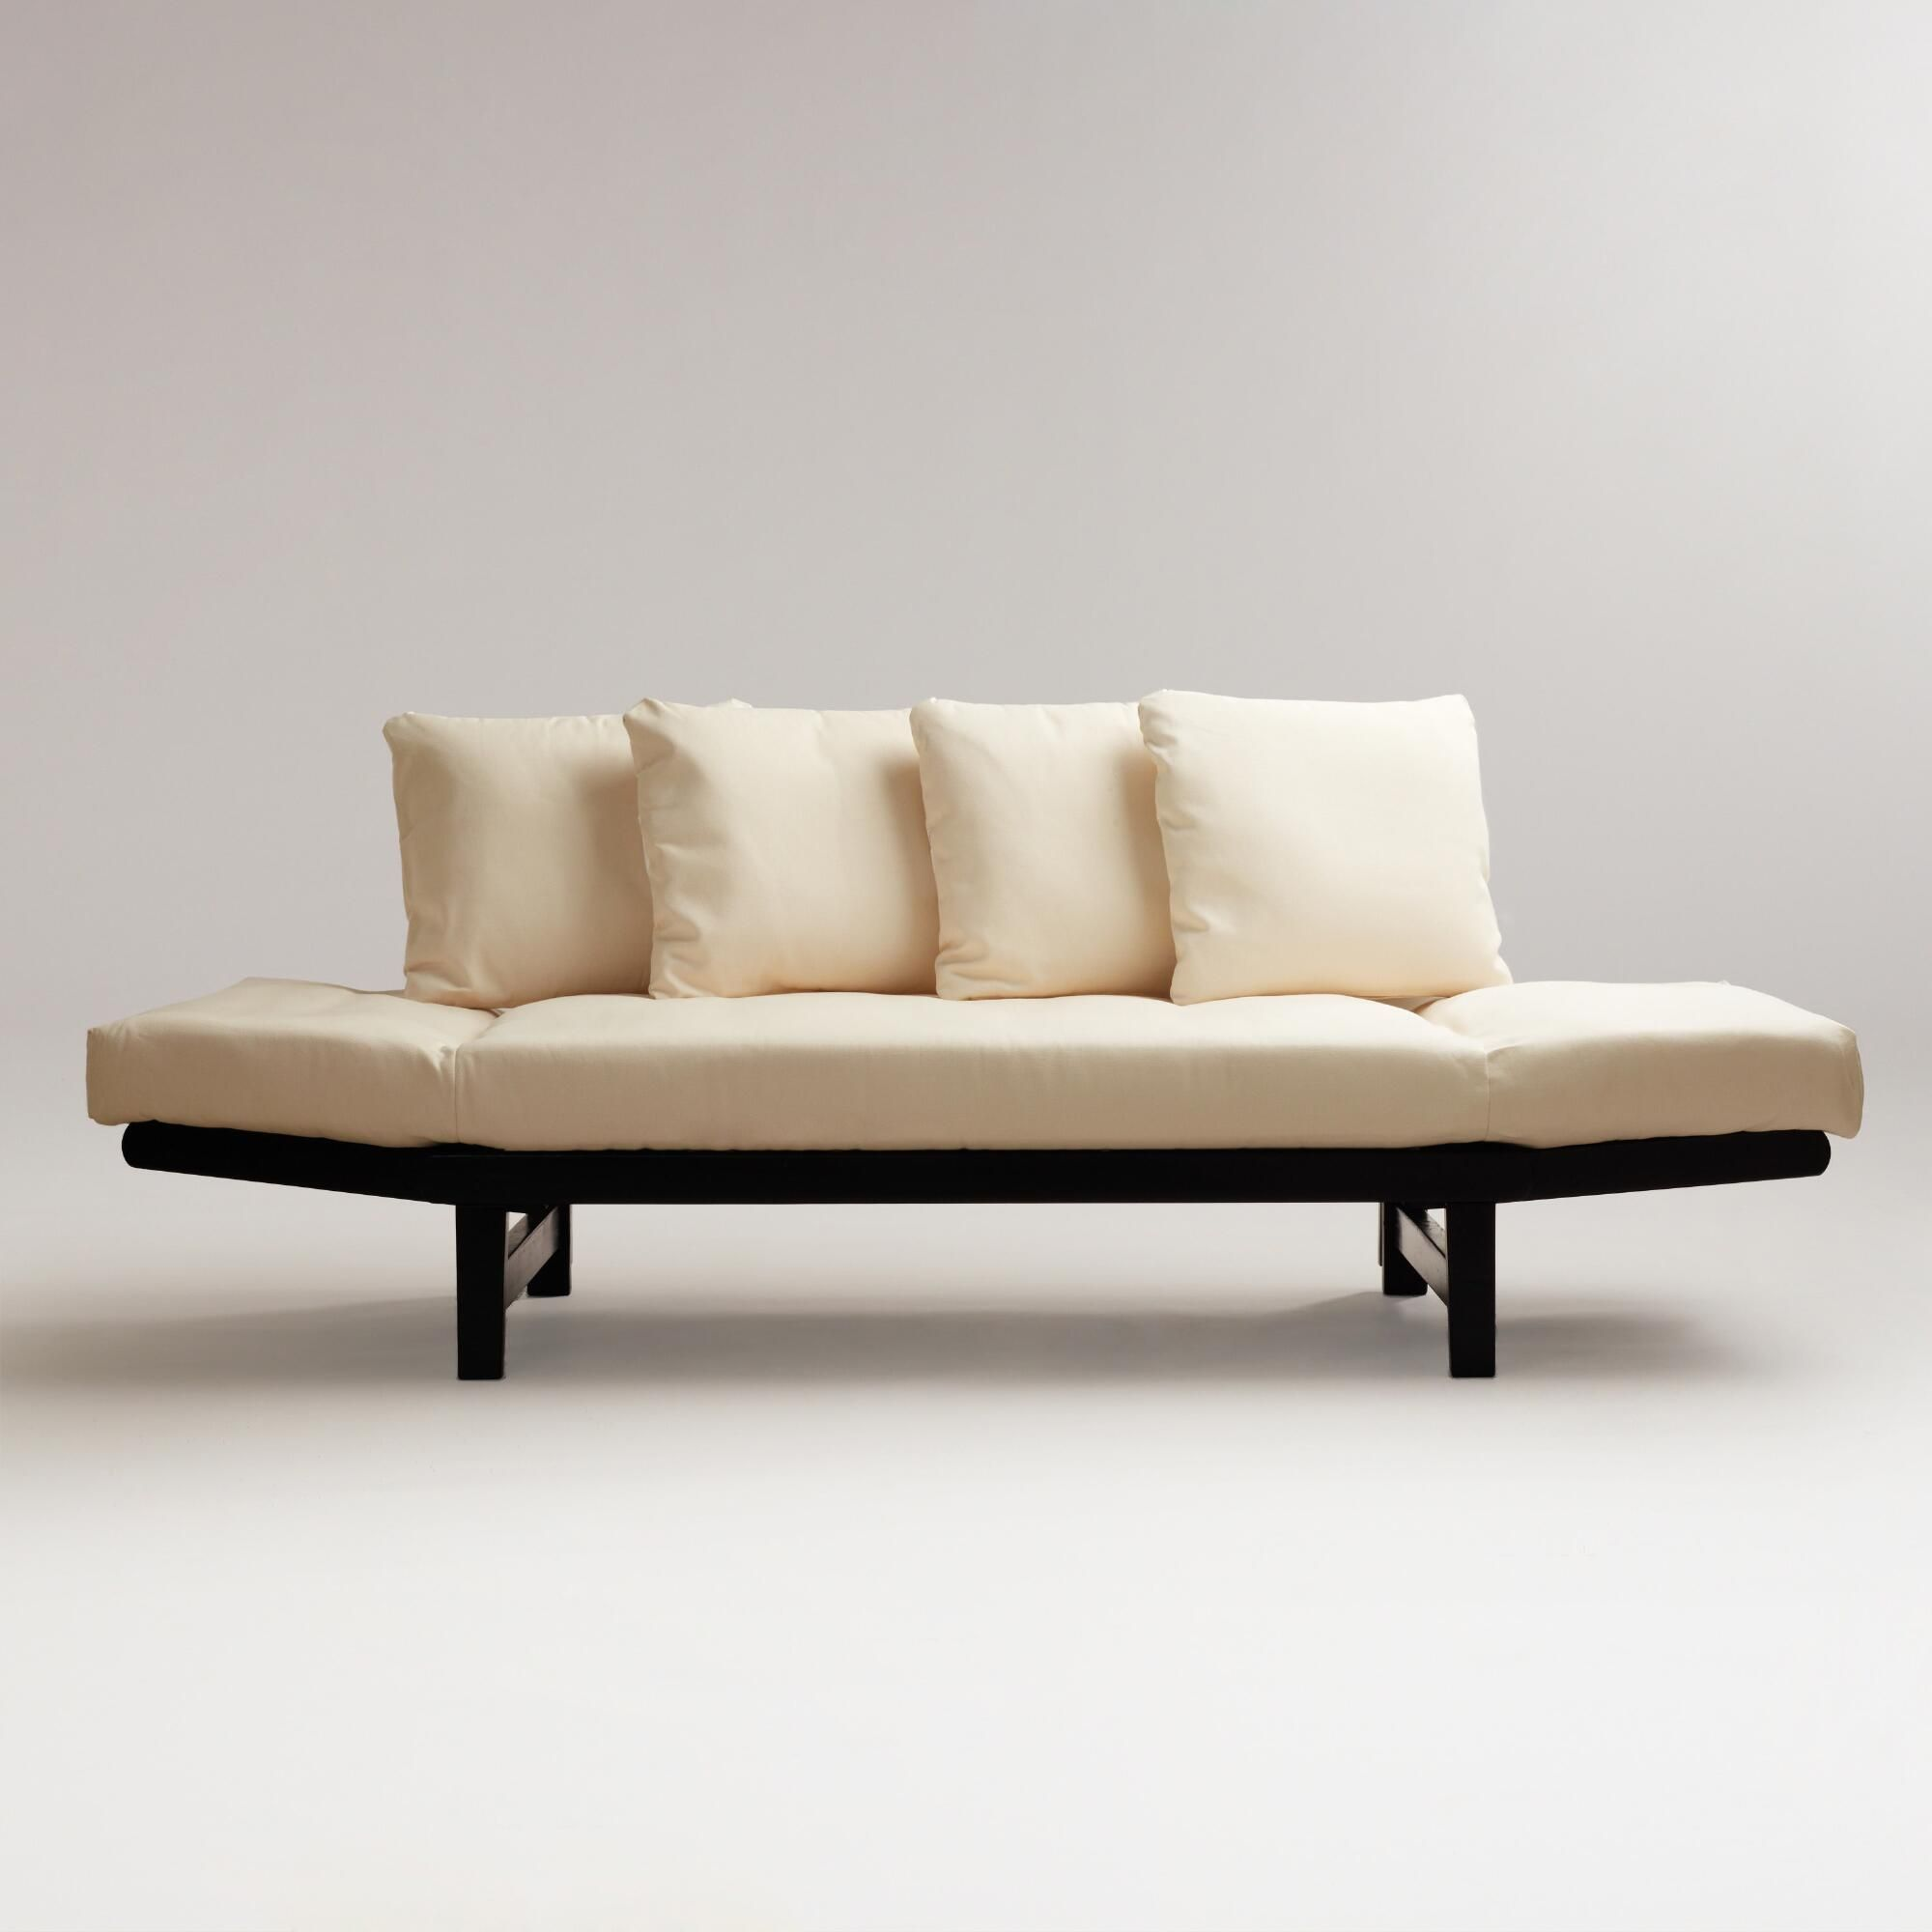 Studio Day Sofa Brown White Wood By World Market A